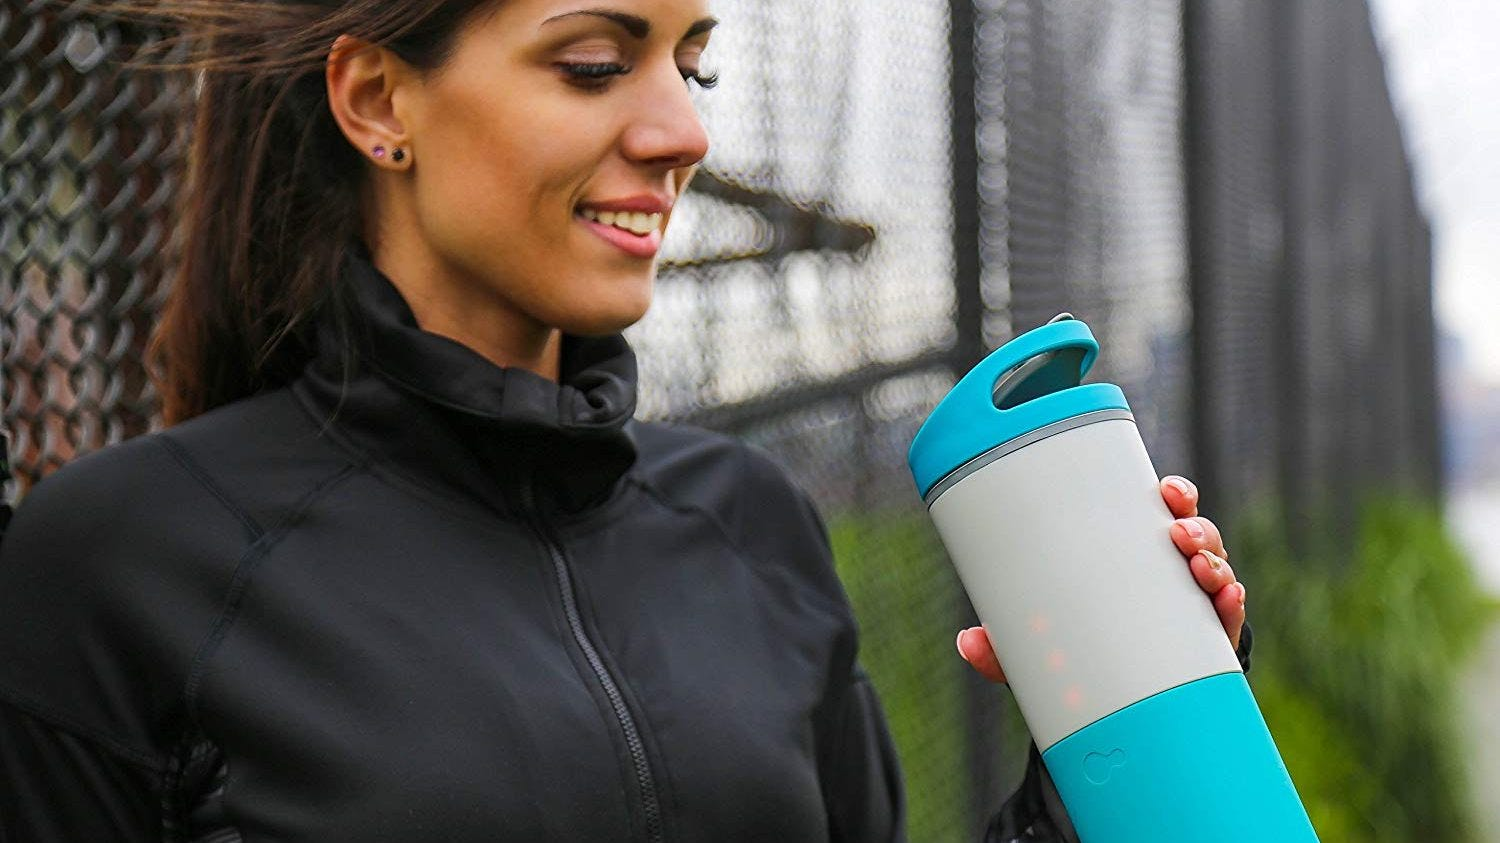 The Best Smart Water Bottles To Keep You Hydrated